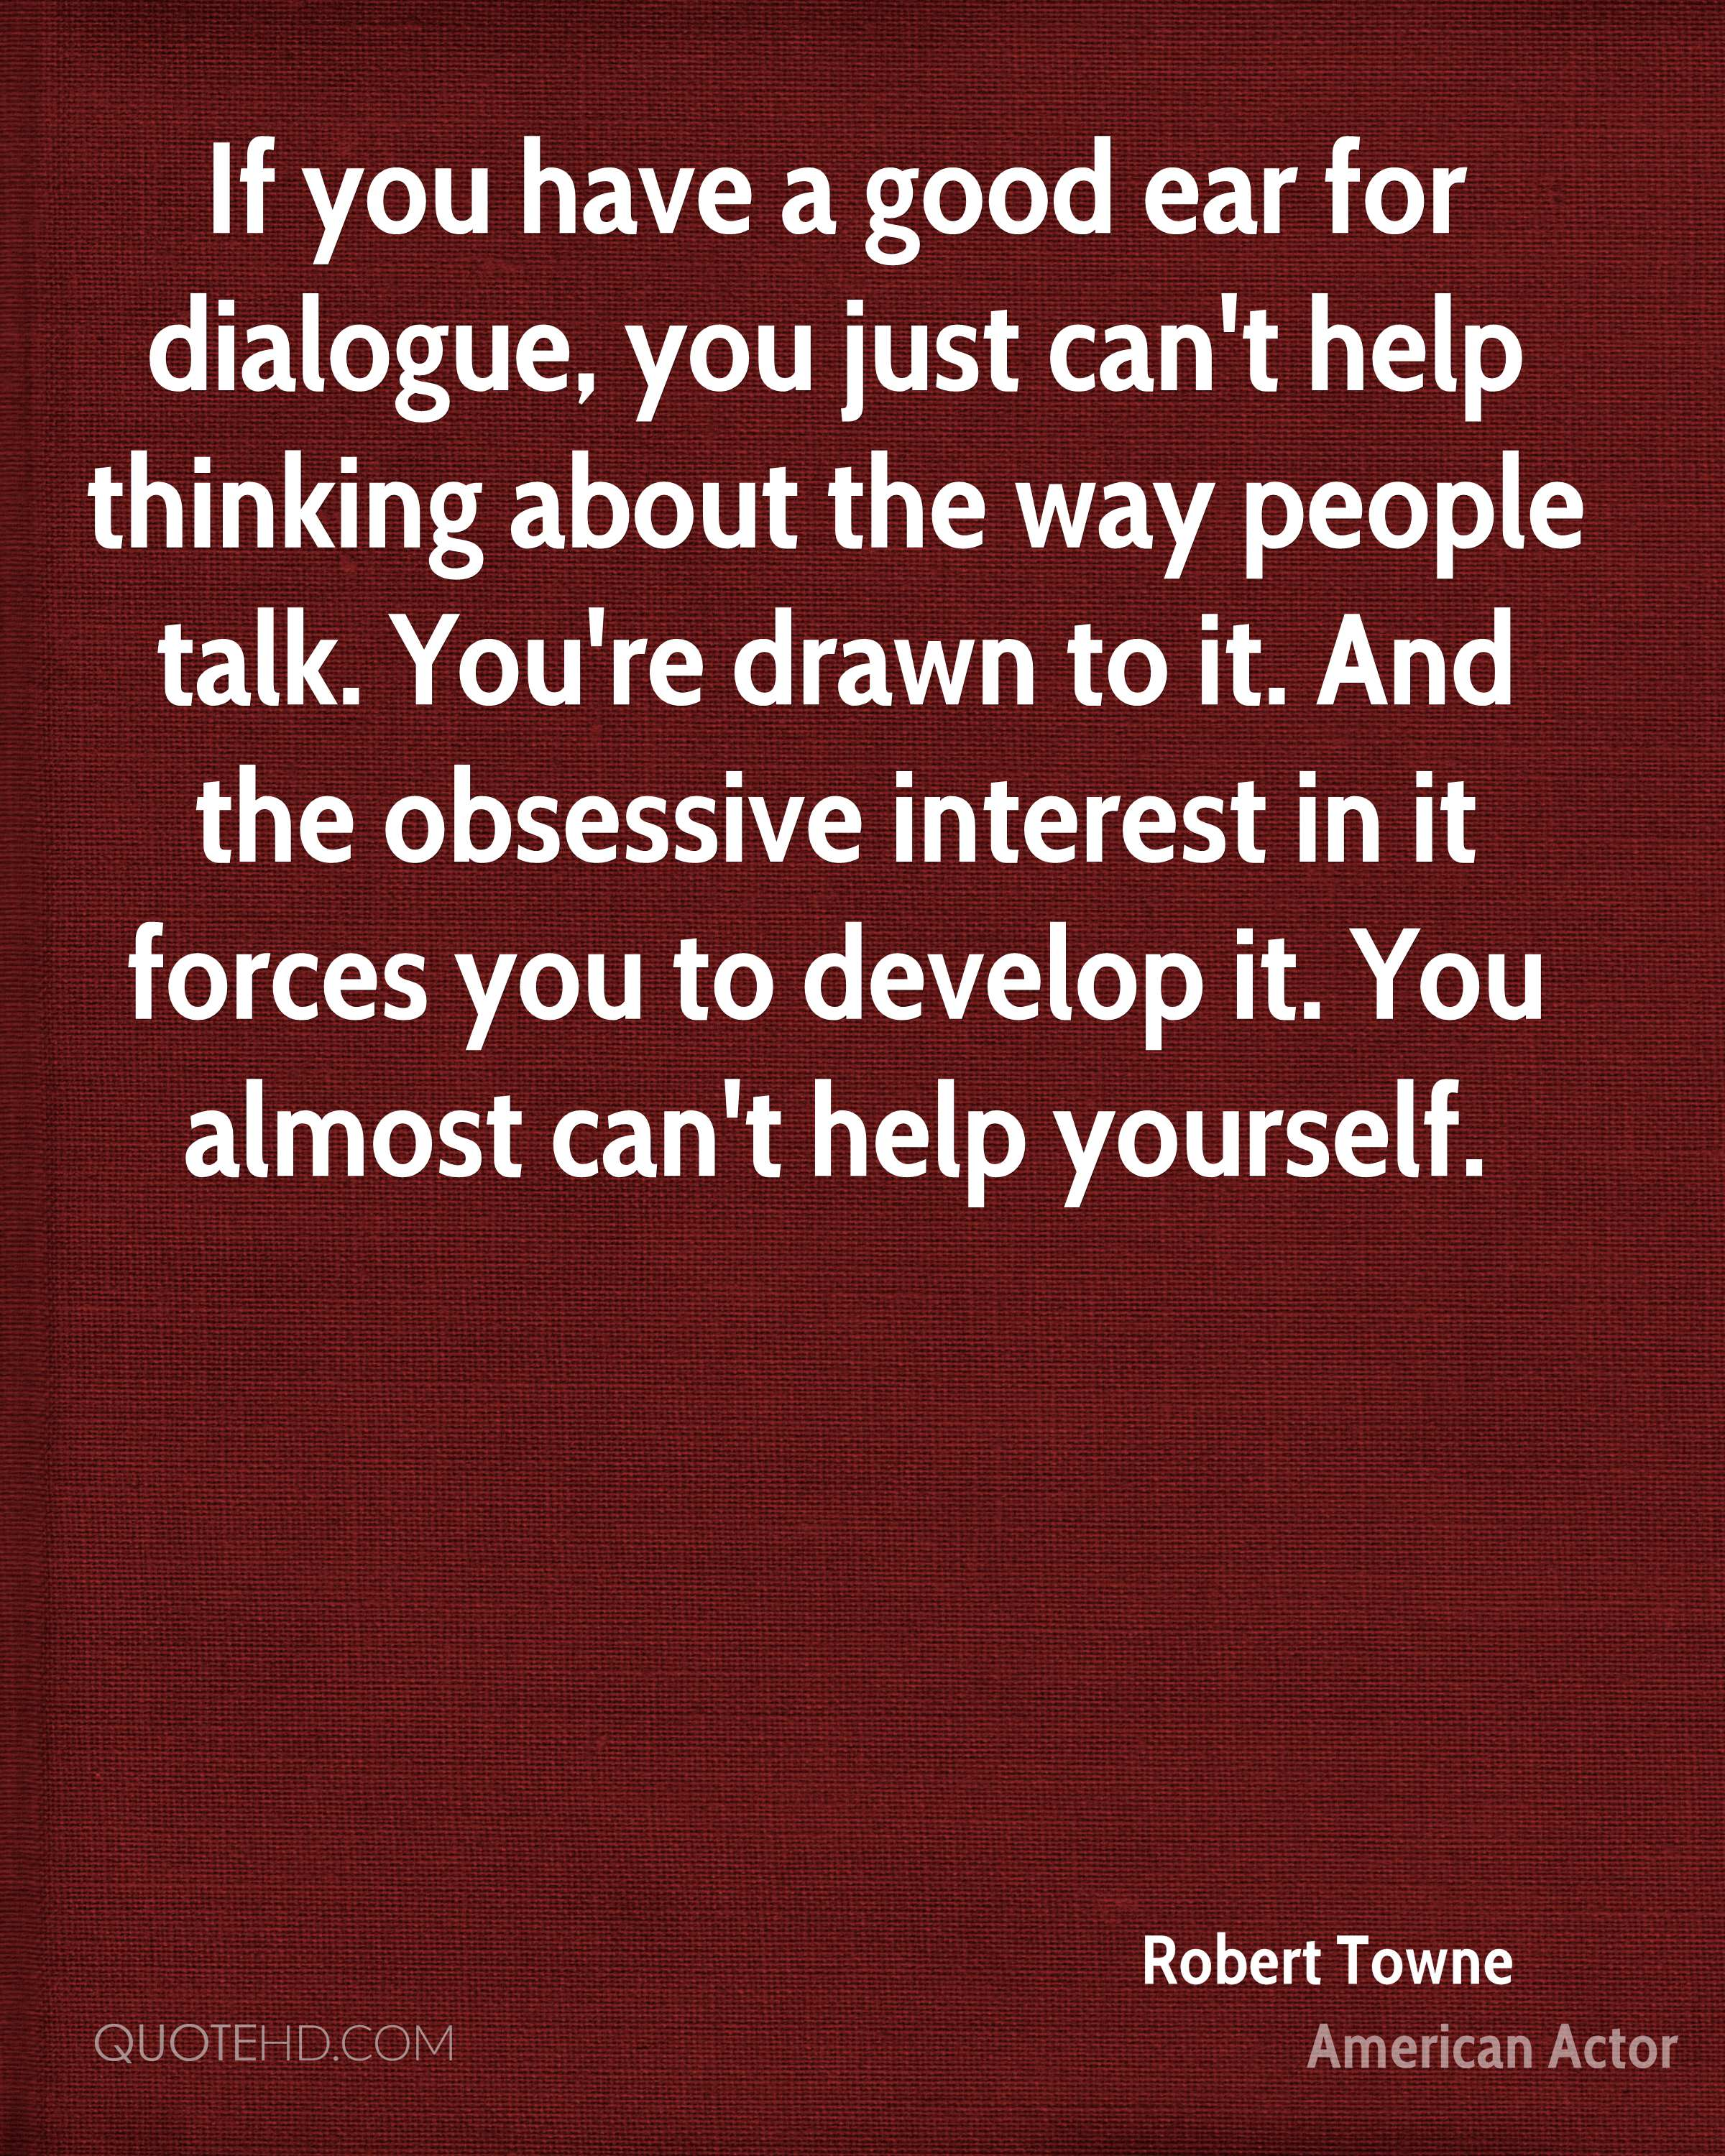 If you have a good ear for dialogue, you just can't help thinking about the way people talk. You're drawn to it. And the obsessive interest in it forces you to develop it. You almost can't help yourself.